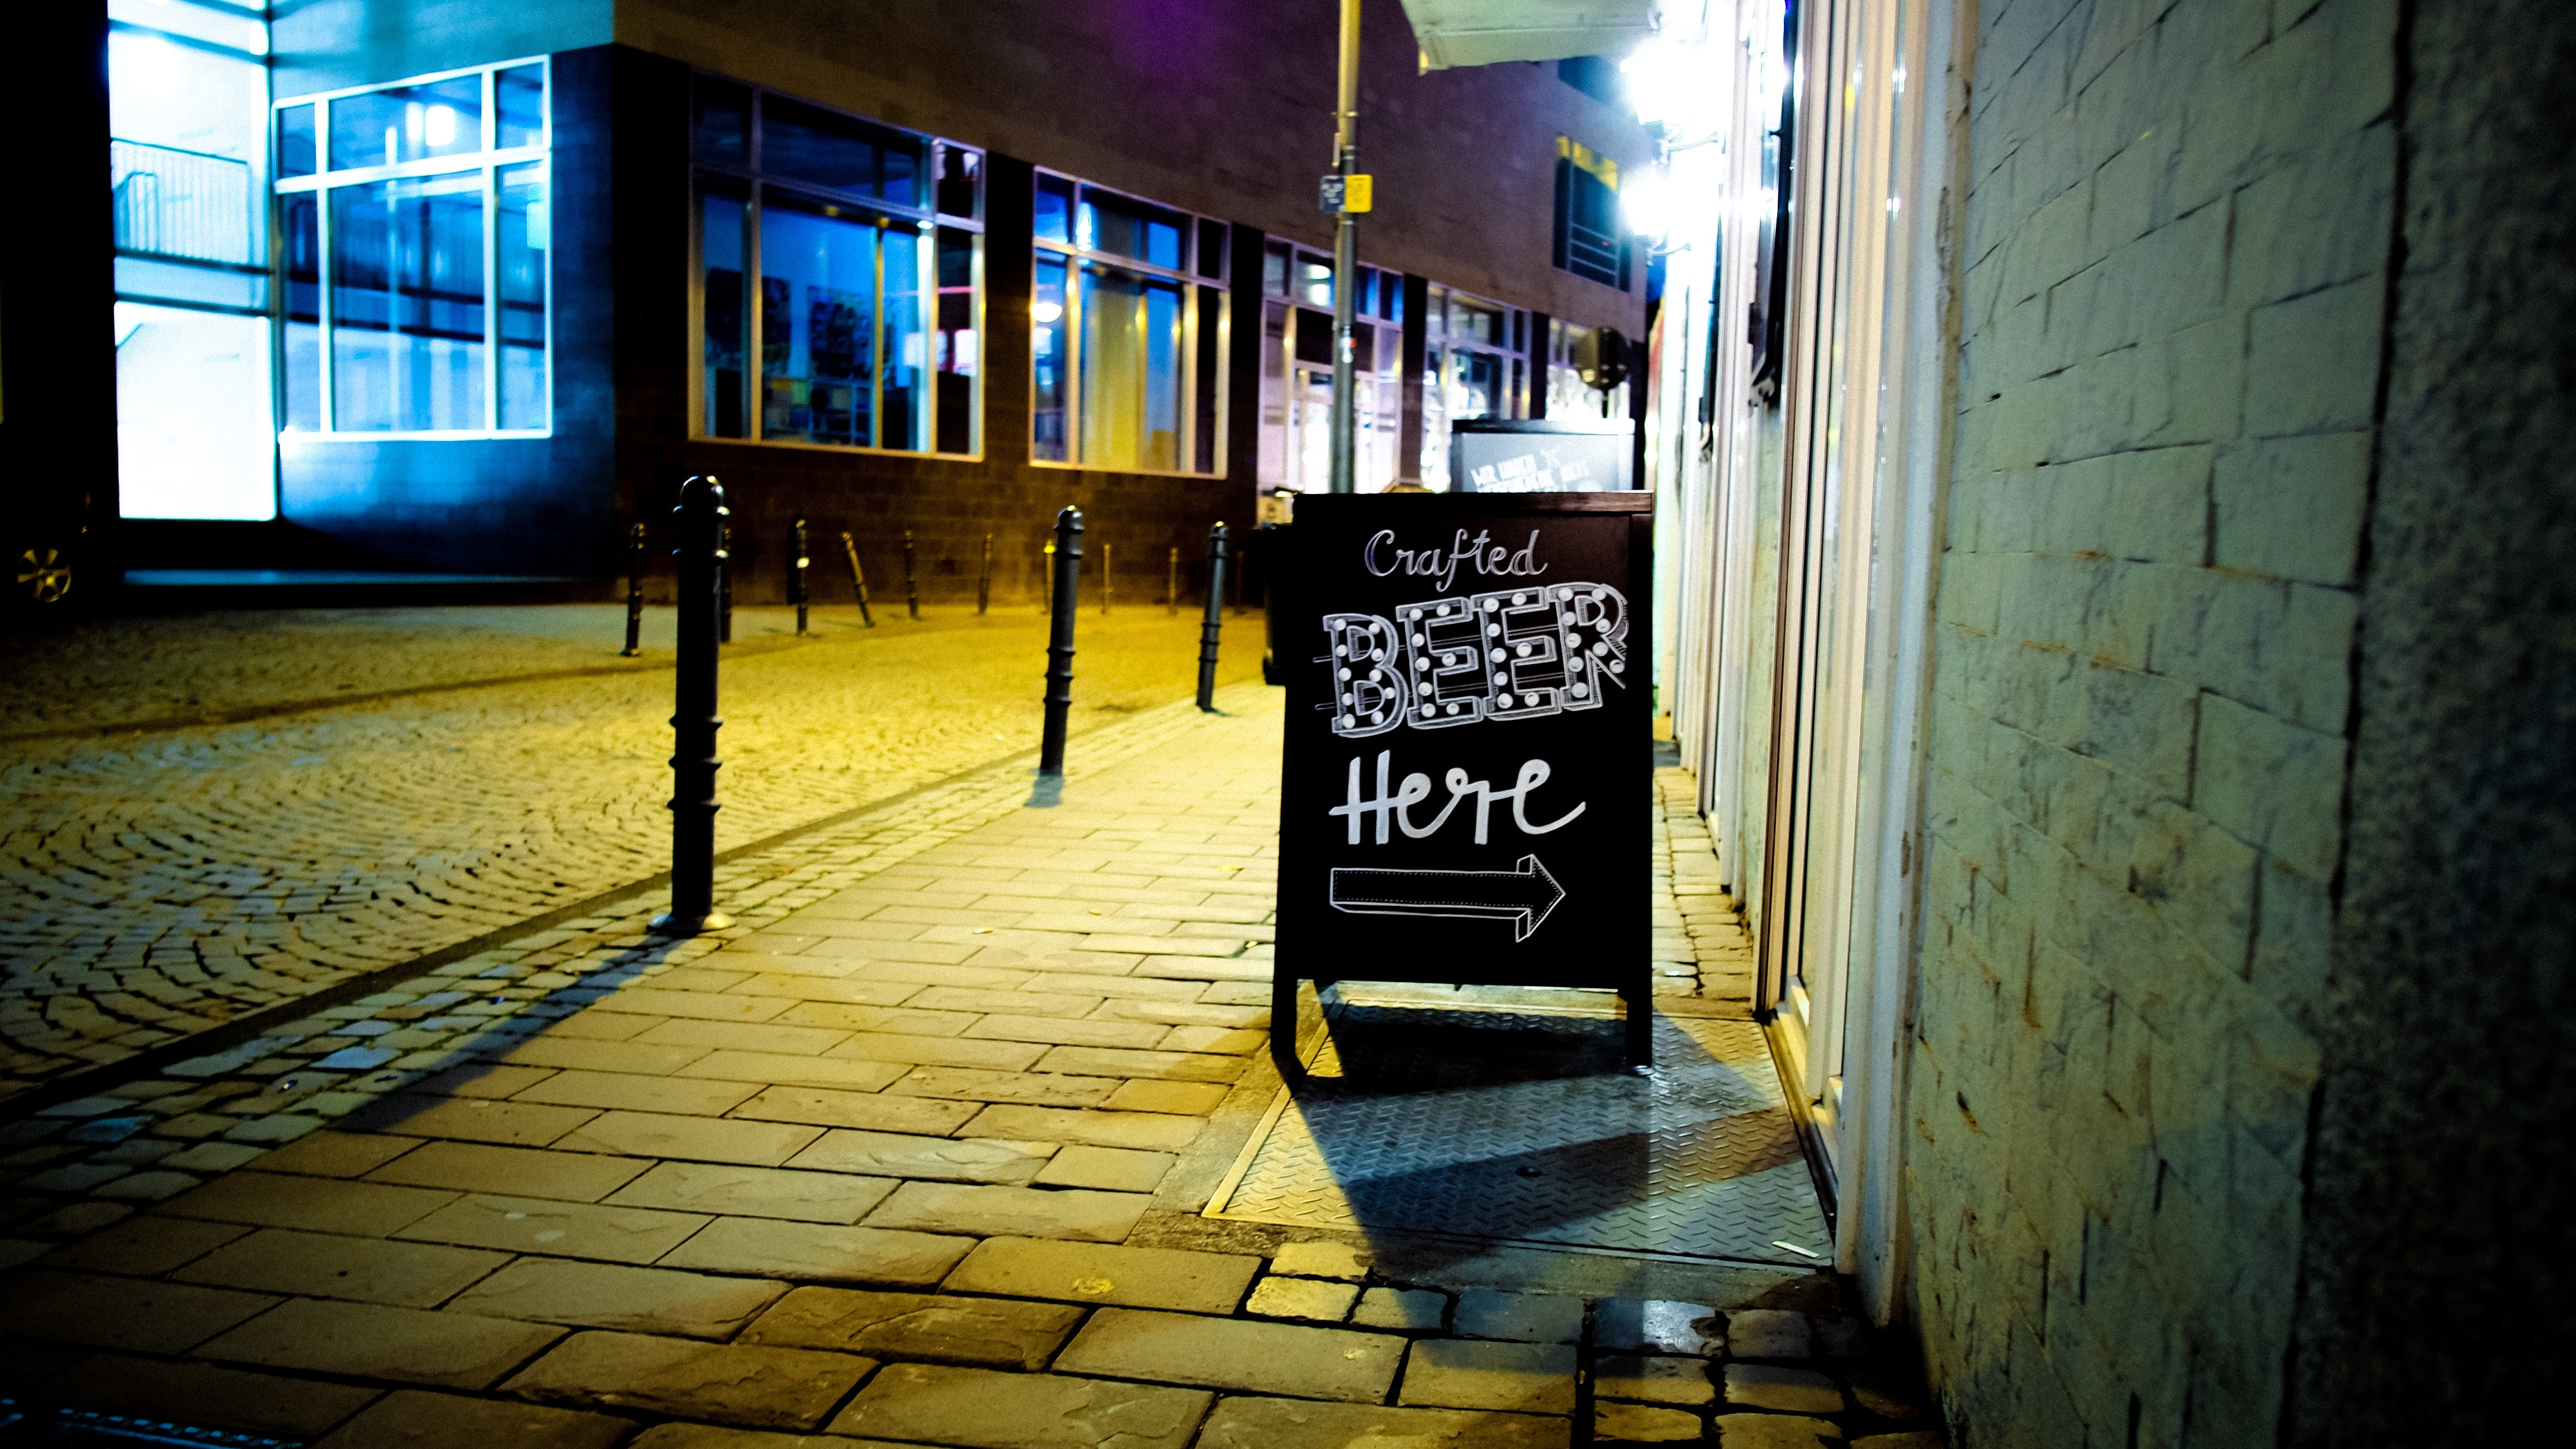 Beer Here Signage, Architectural design, Glass items, Urban, Street, HQ Photo